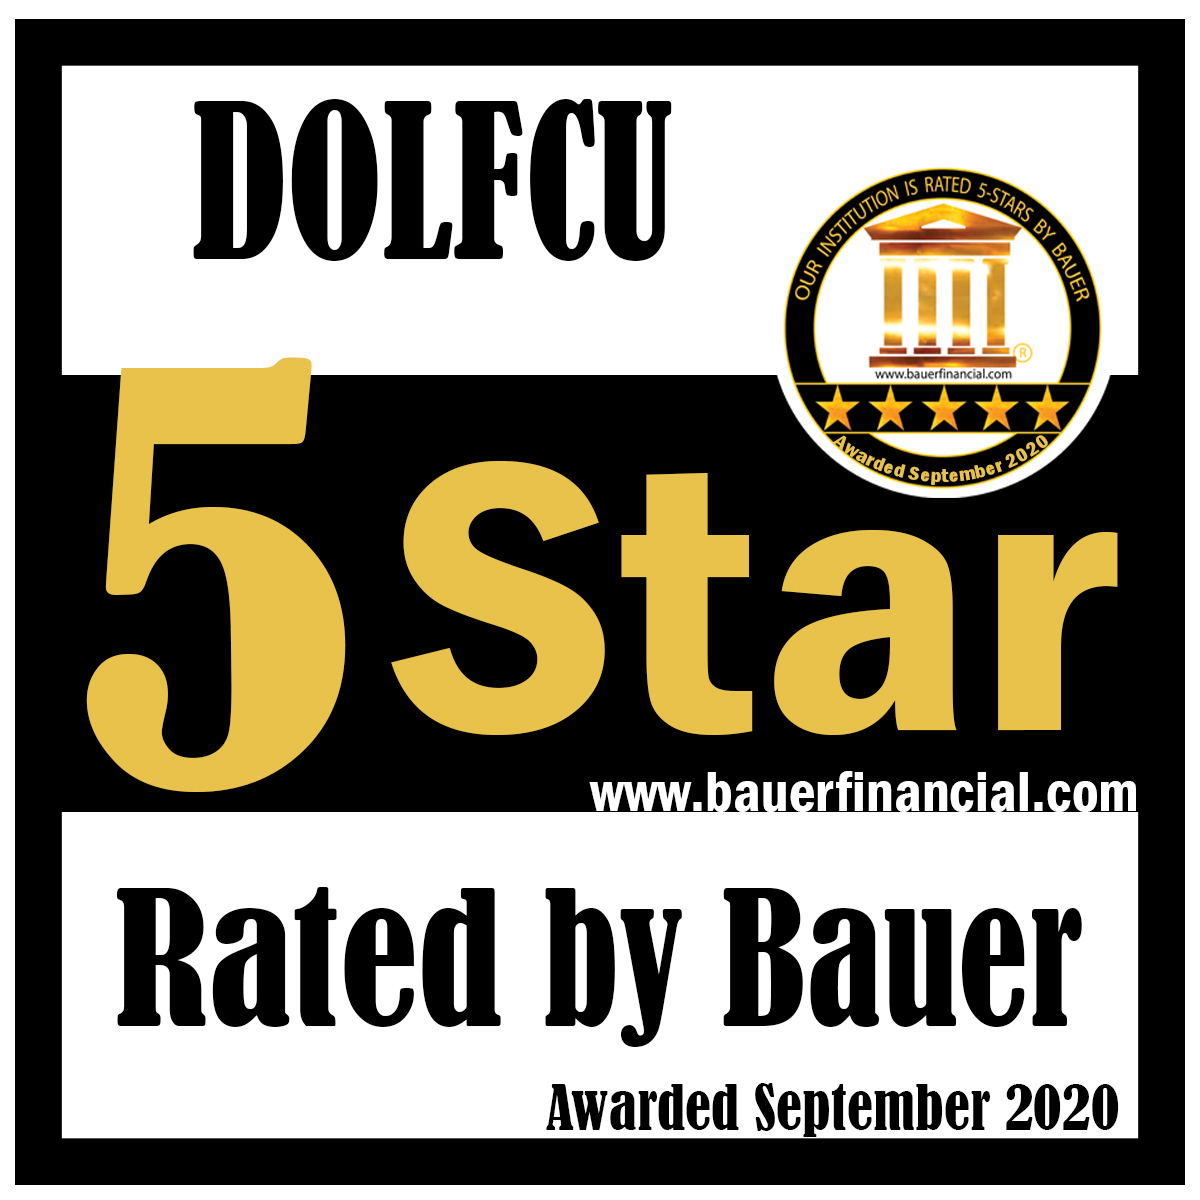 DOLFCU has been awarded a 5-Star rating for financial strength and stability by BauerFinancial..